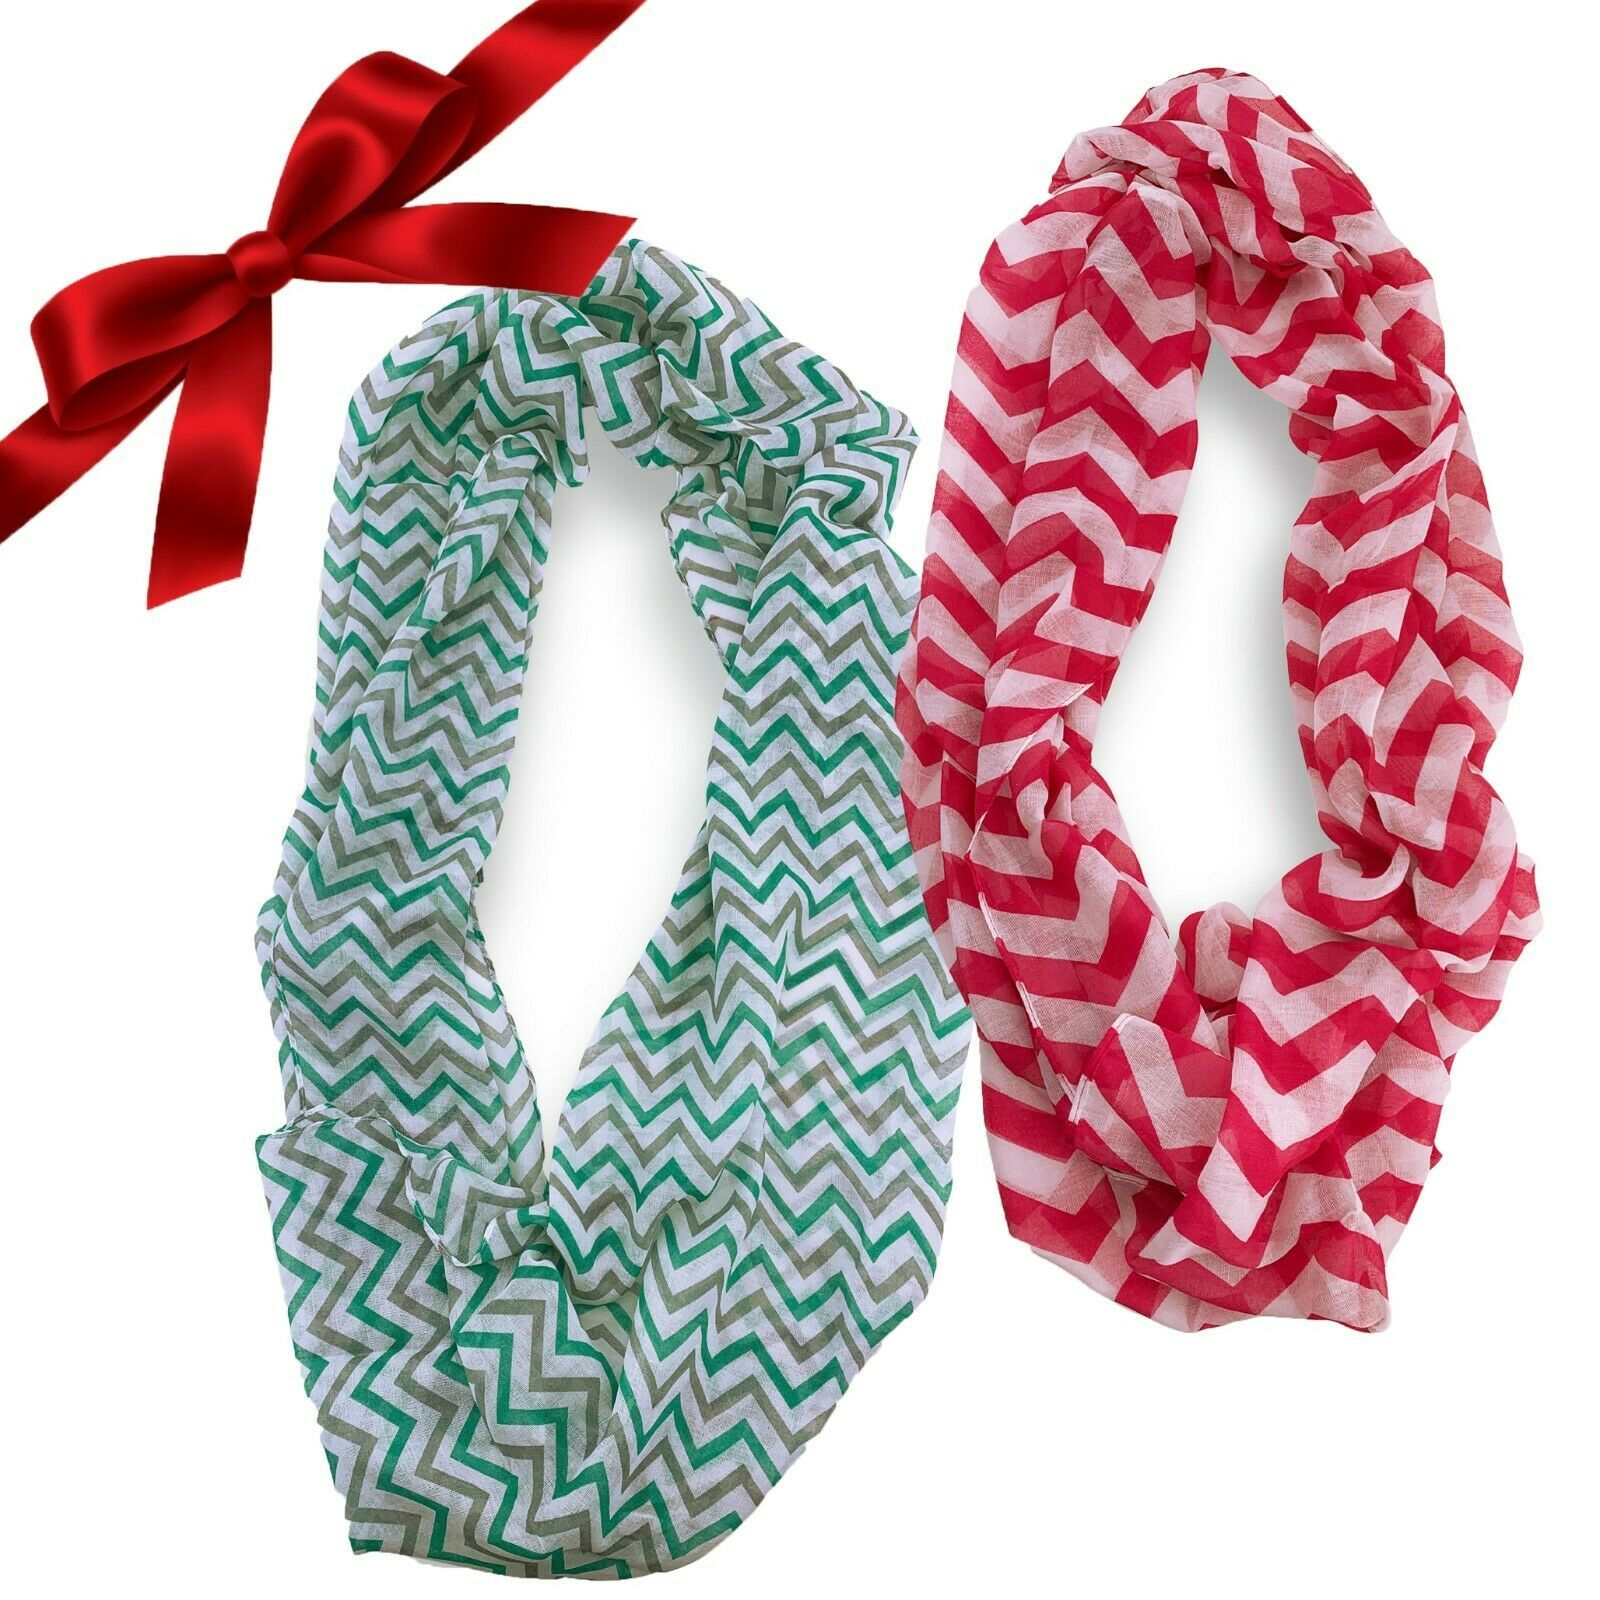 Primary image for 2pc Sheer Striped Chevron Infinity Scarves Christmas Set Wraps Headband Shawl